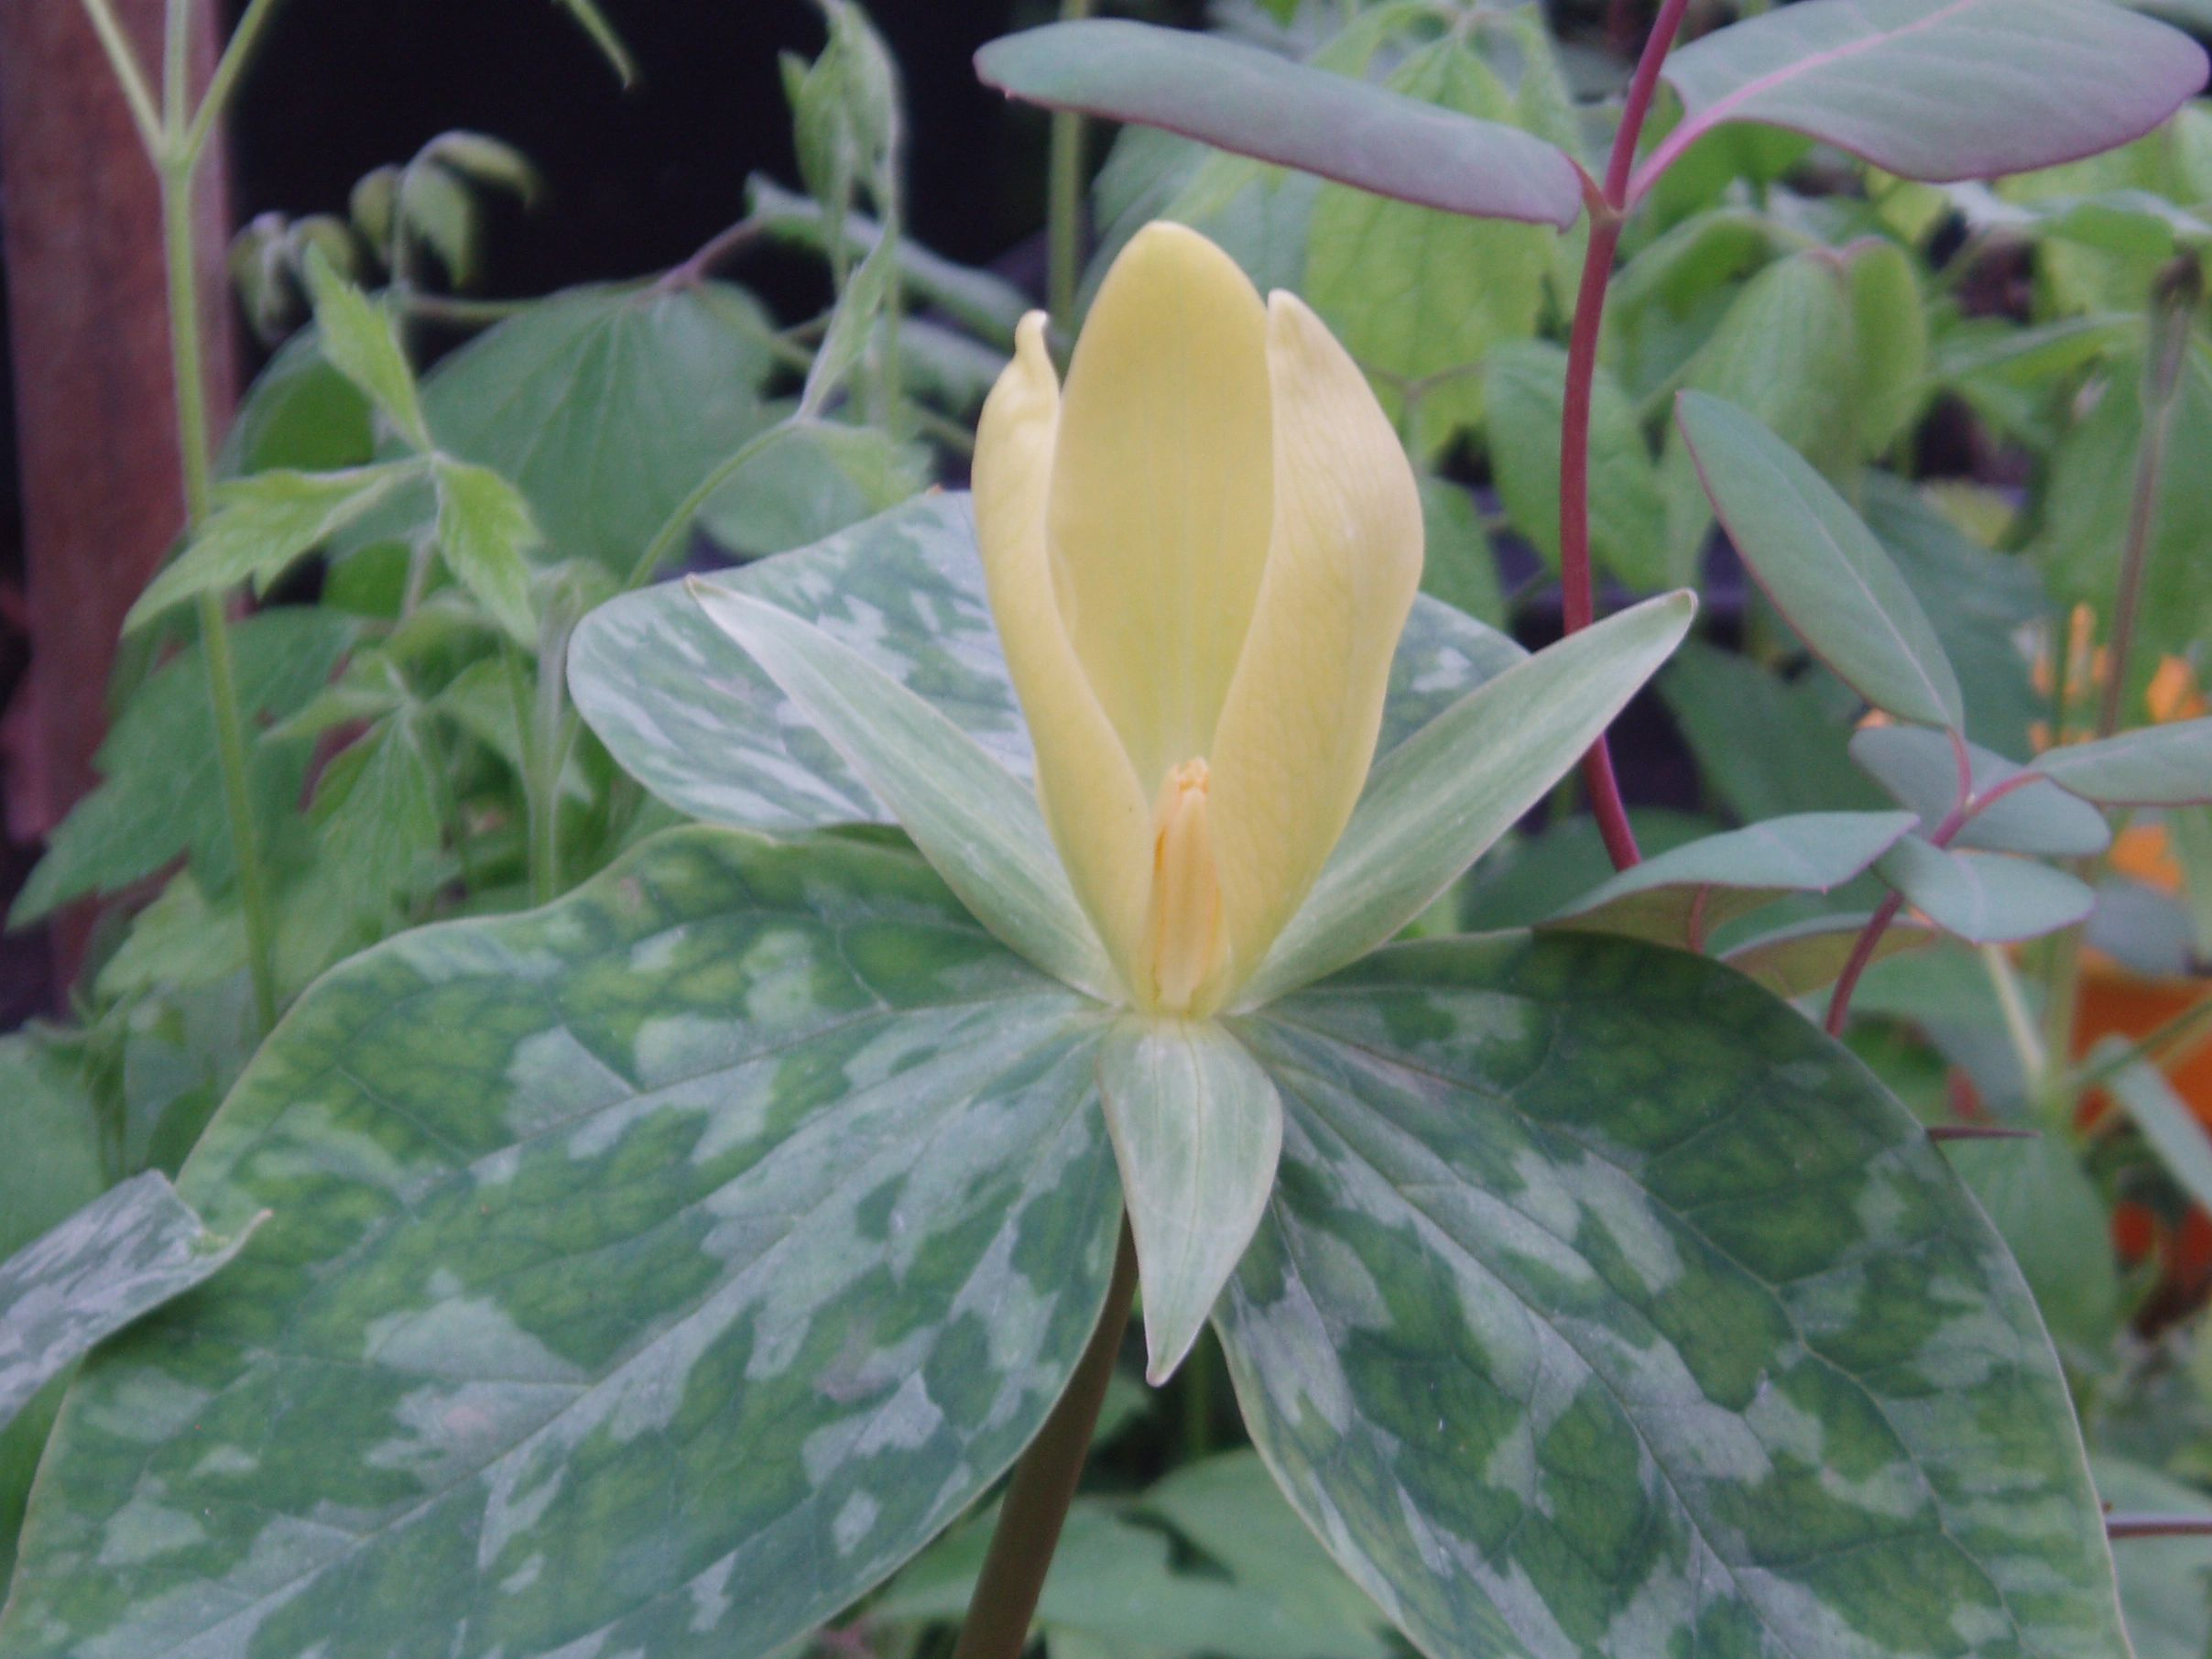 "{""blocks"":[{""key"":""21h5l"",""text"":"" Trillium luteum Yellow Trillium yellow wakerobin - potted plants email john@easywildflowers.com "",""type"":""unstyled"",""depth"":0,""inlineStyleRanges"":[],""entityRanges"":[],""data"":{}}],""entityMap"":{}}"